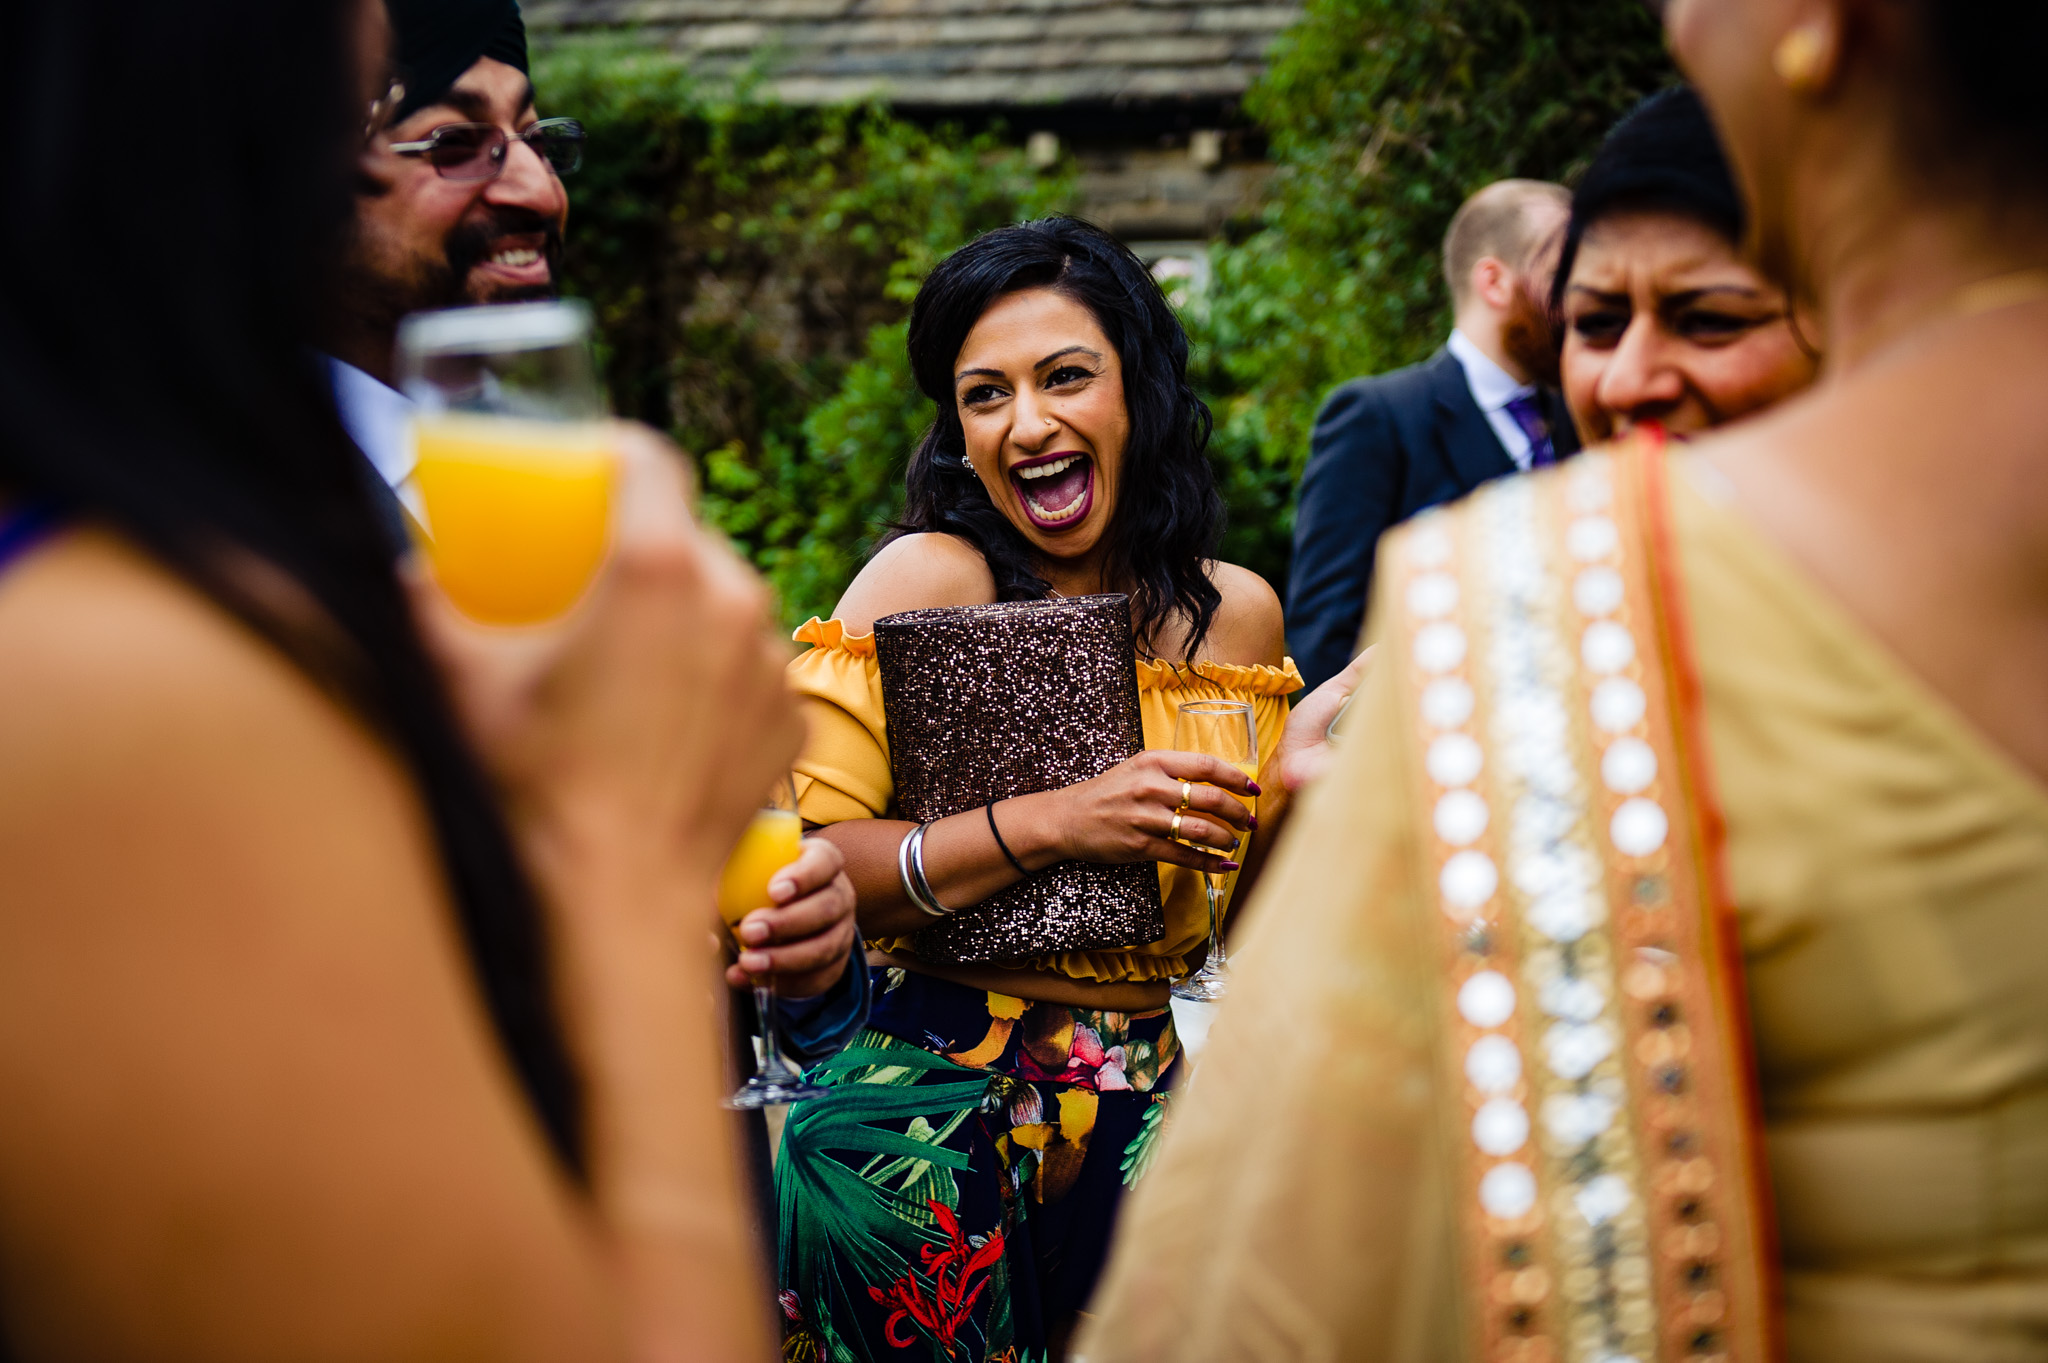 Epic laugh from this wedding guest!